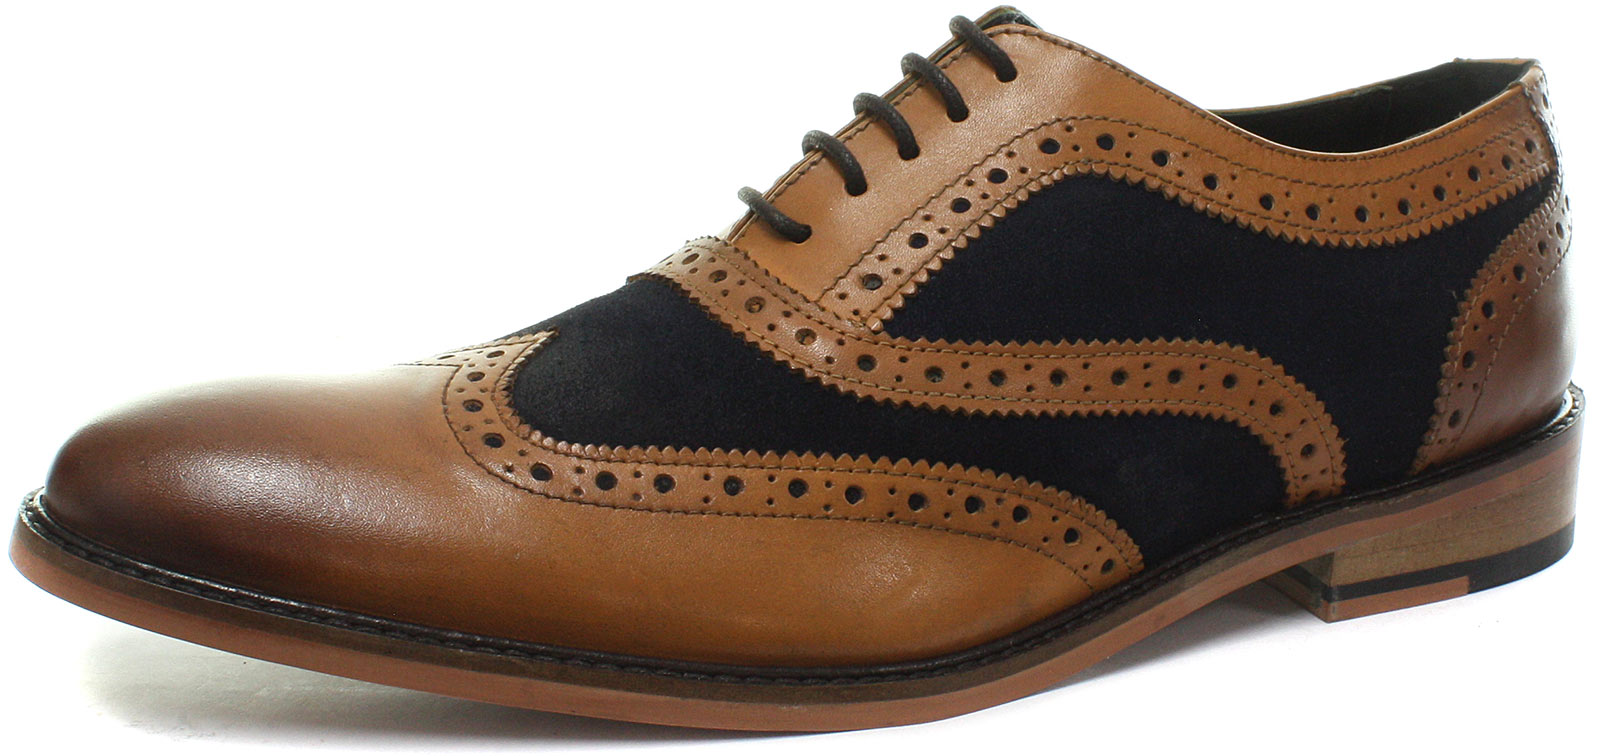 New Tan Eye navy 5 Oxford Tutte Mens misure le Roamers Brogue Shoes rWapnr